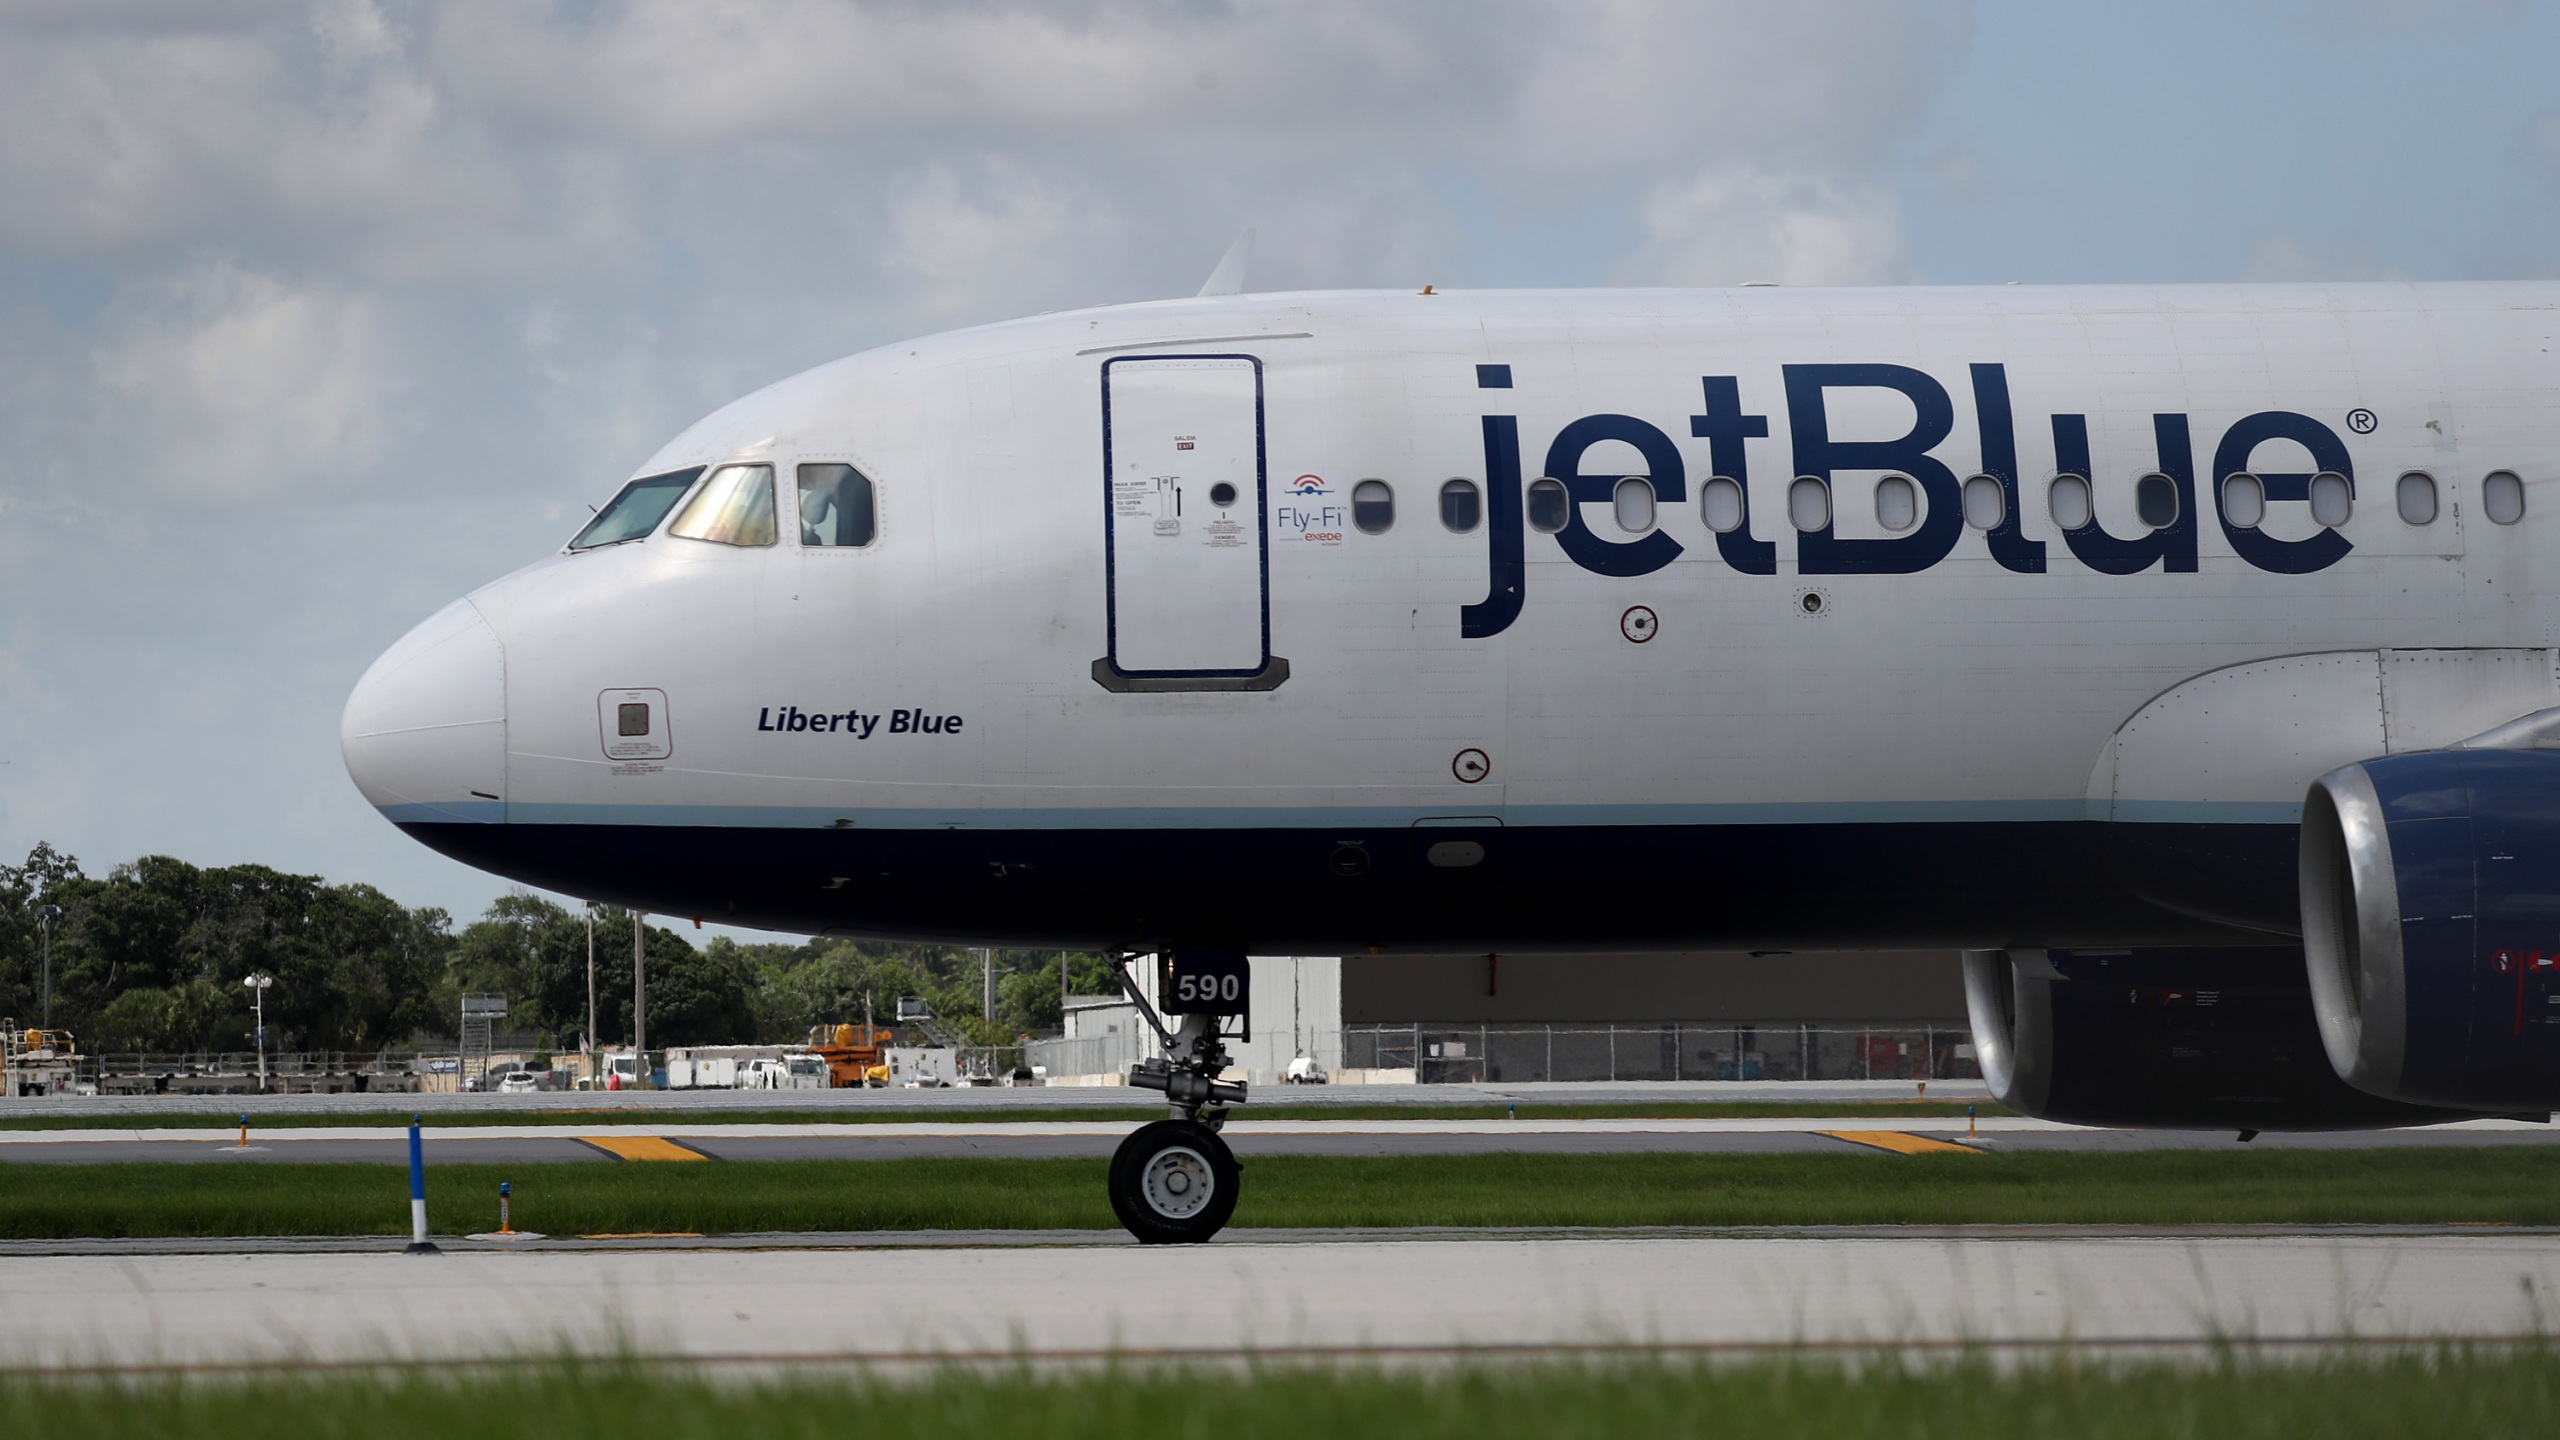 A JetBlue plane prepares to take off from the Fort Lauderdale-Hollywood International Airport on July 16, 2020 in Fort Lauderdale, Florida. (Joe Raedle/Getty Images)